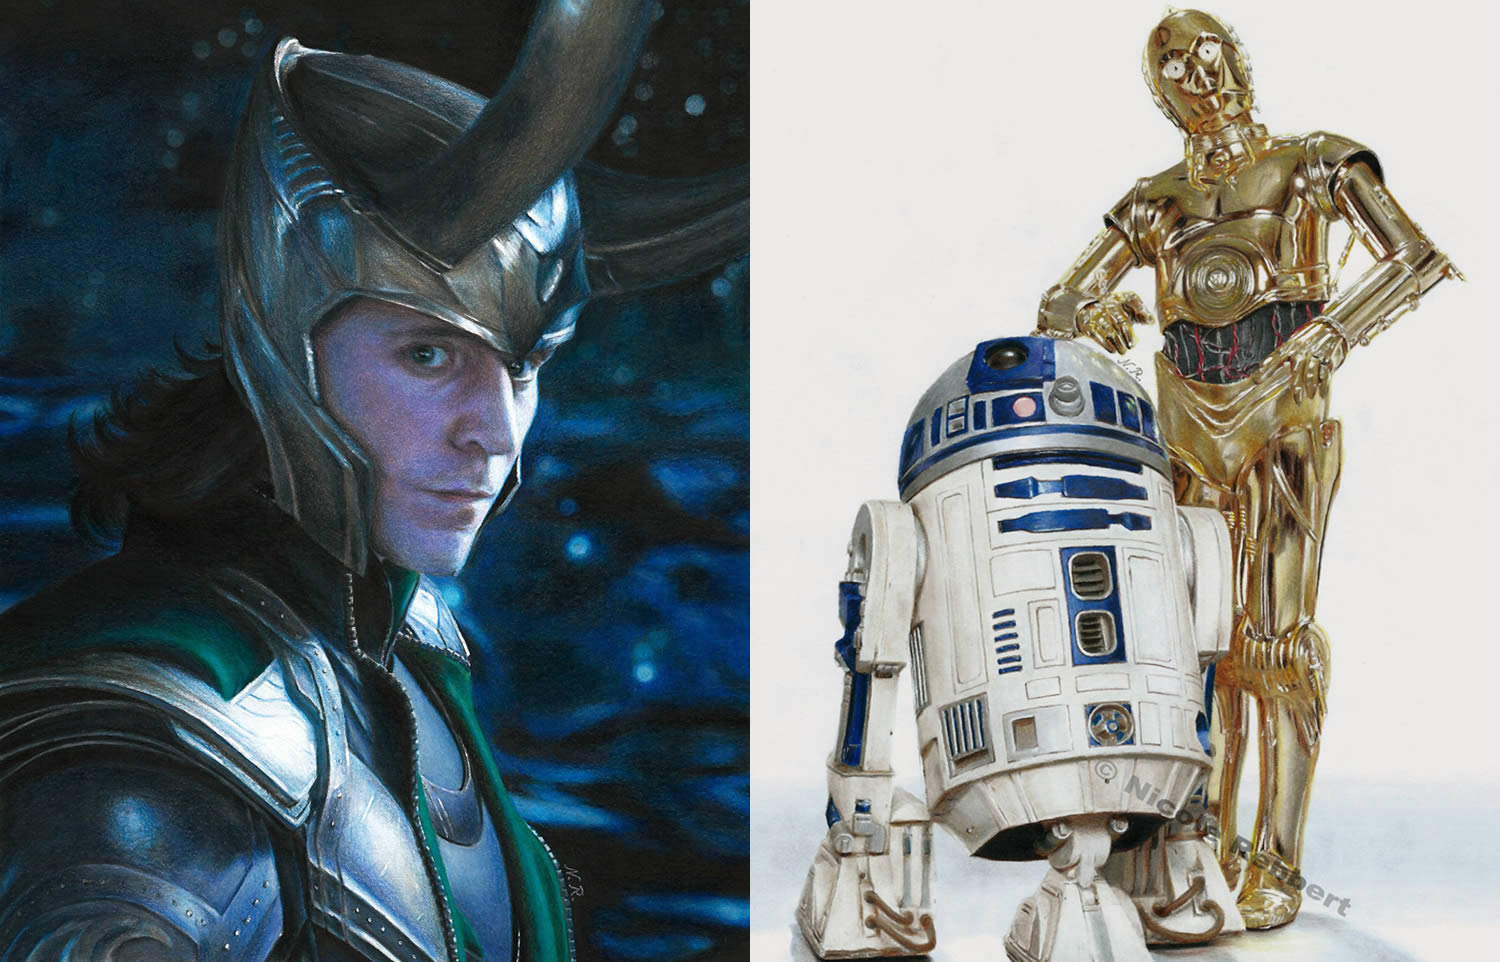 loki (tom hiddleston) and r2d2 and 3-cpo, star wars hyperrealistic drawing